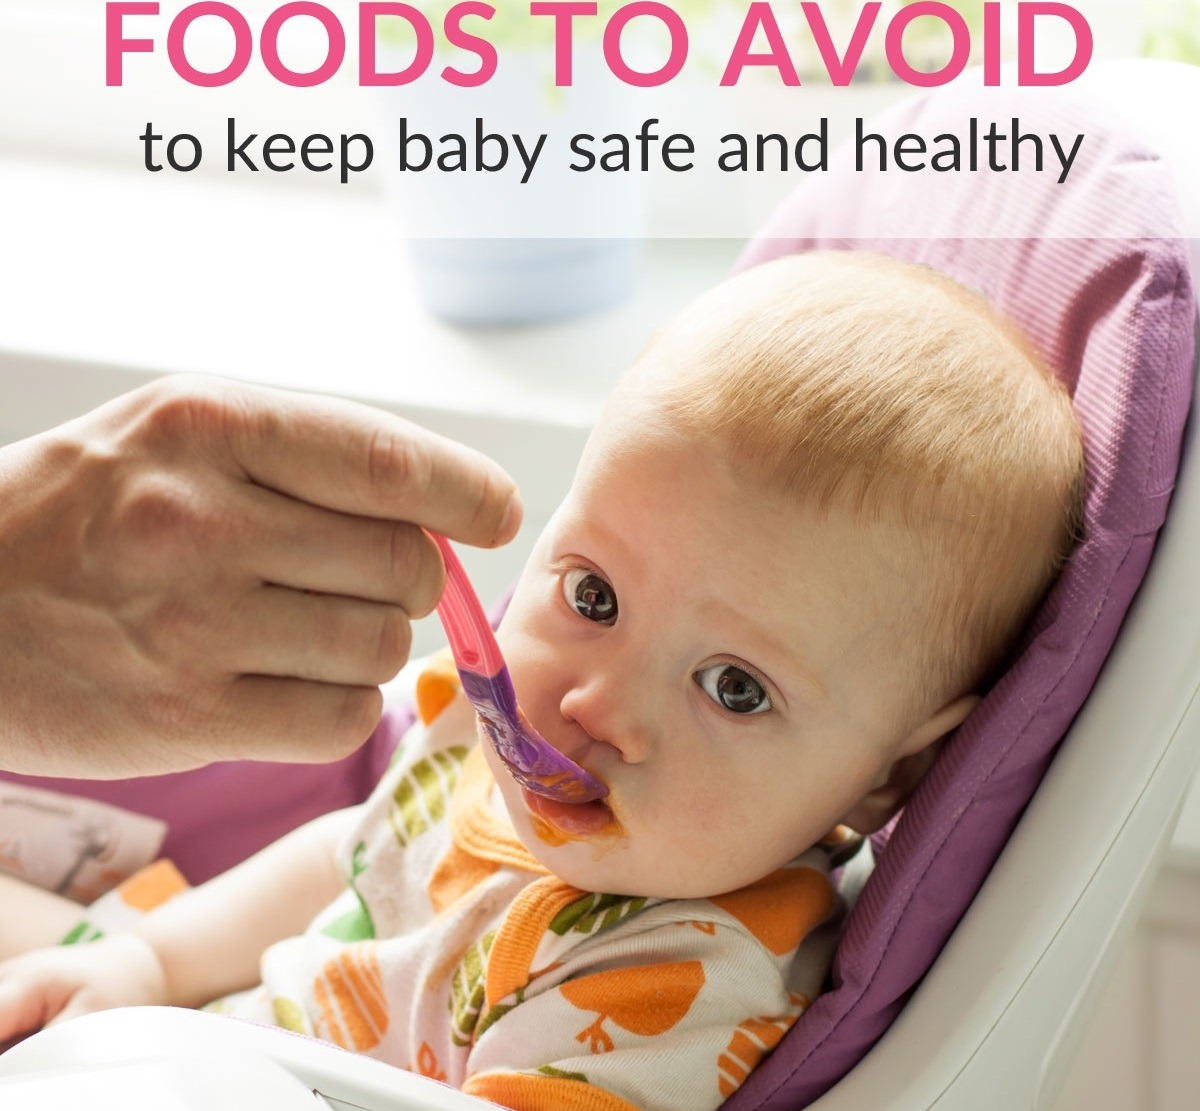 Foods To Avoid For Babies To Keep Them Safe And Healthy Printable Incl-9259